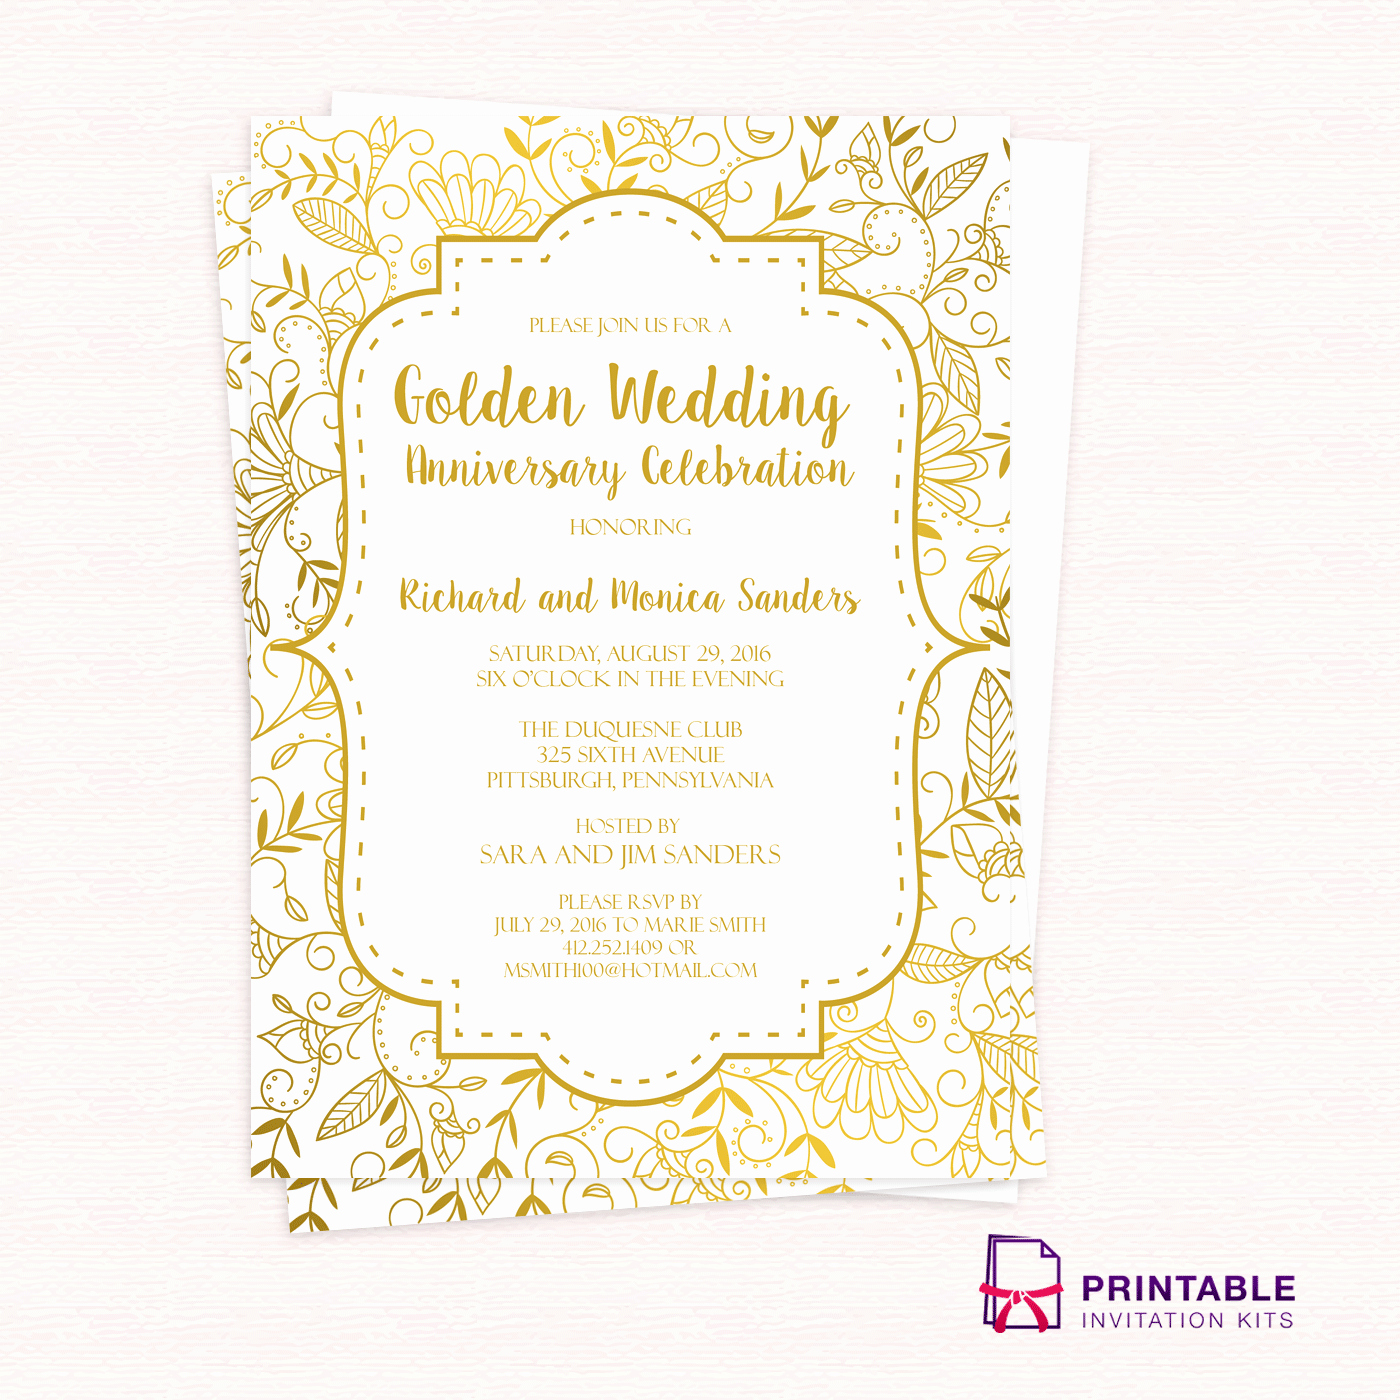 Golden Birthday Invitation Wording Unique Golden Wedding Anniversary Invitation Template